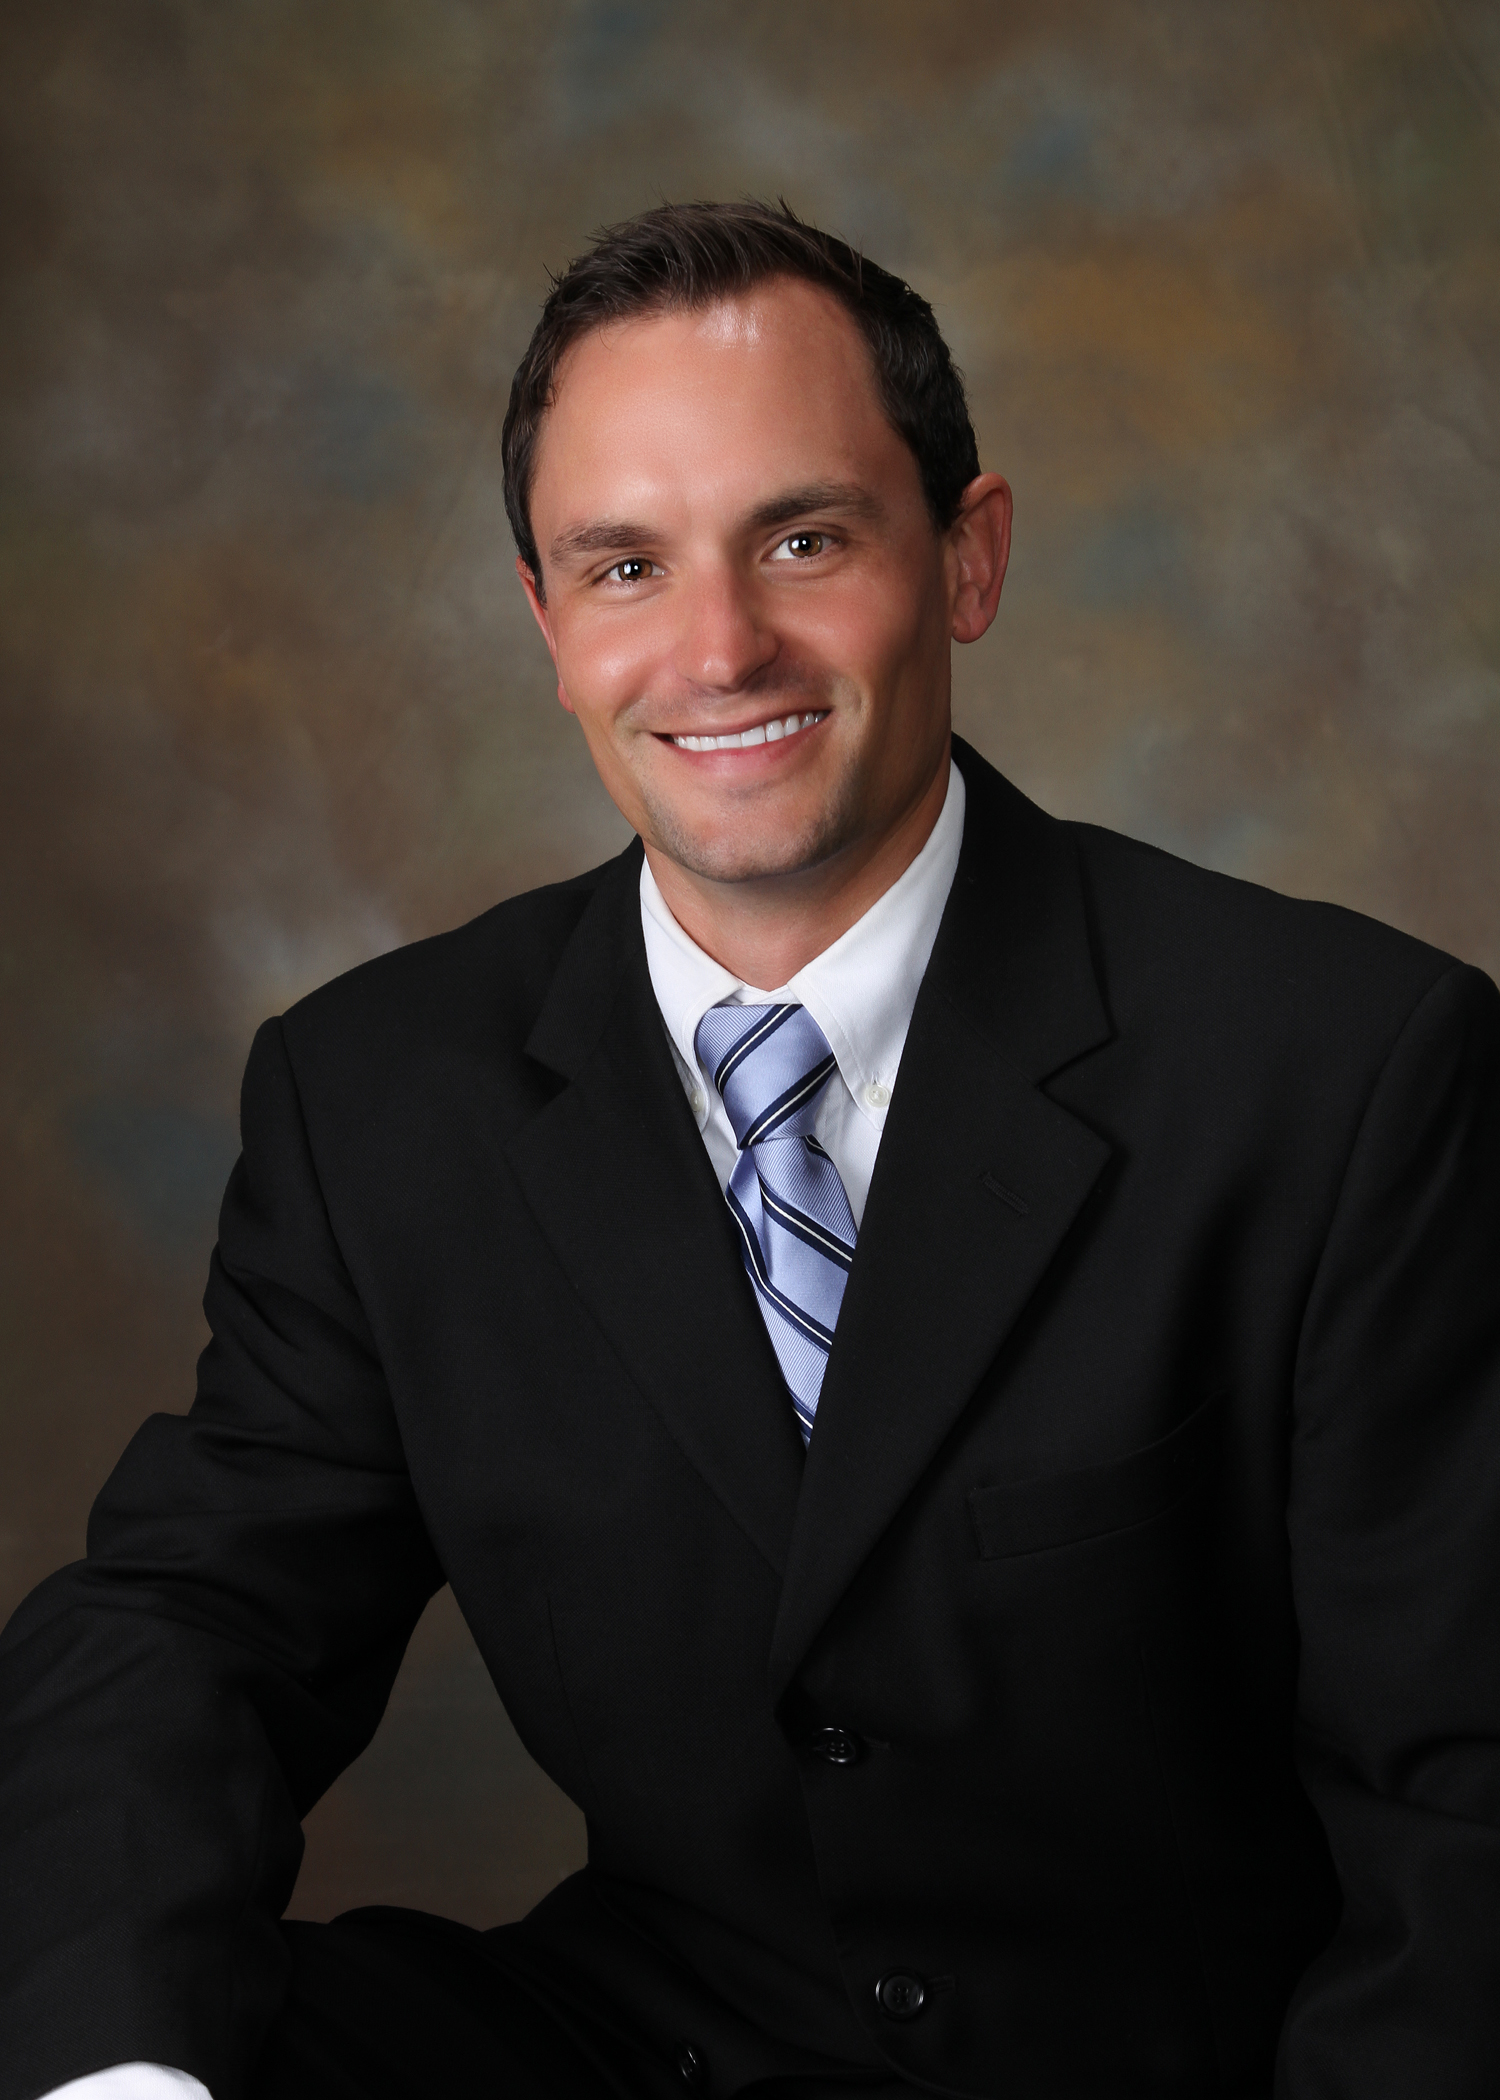 Photo of Dr. Jason Dandoy, Superintendent of Schools